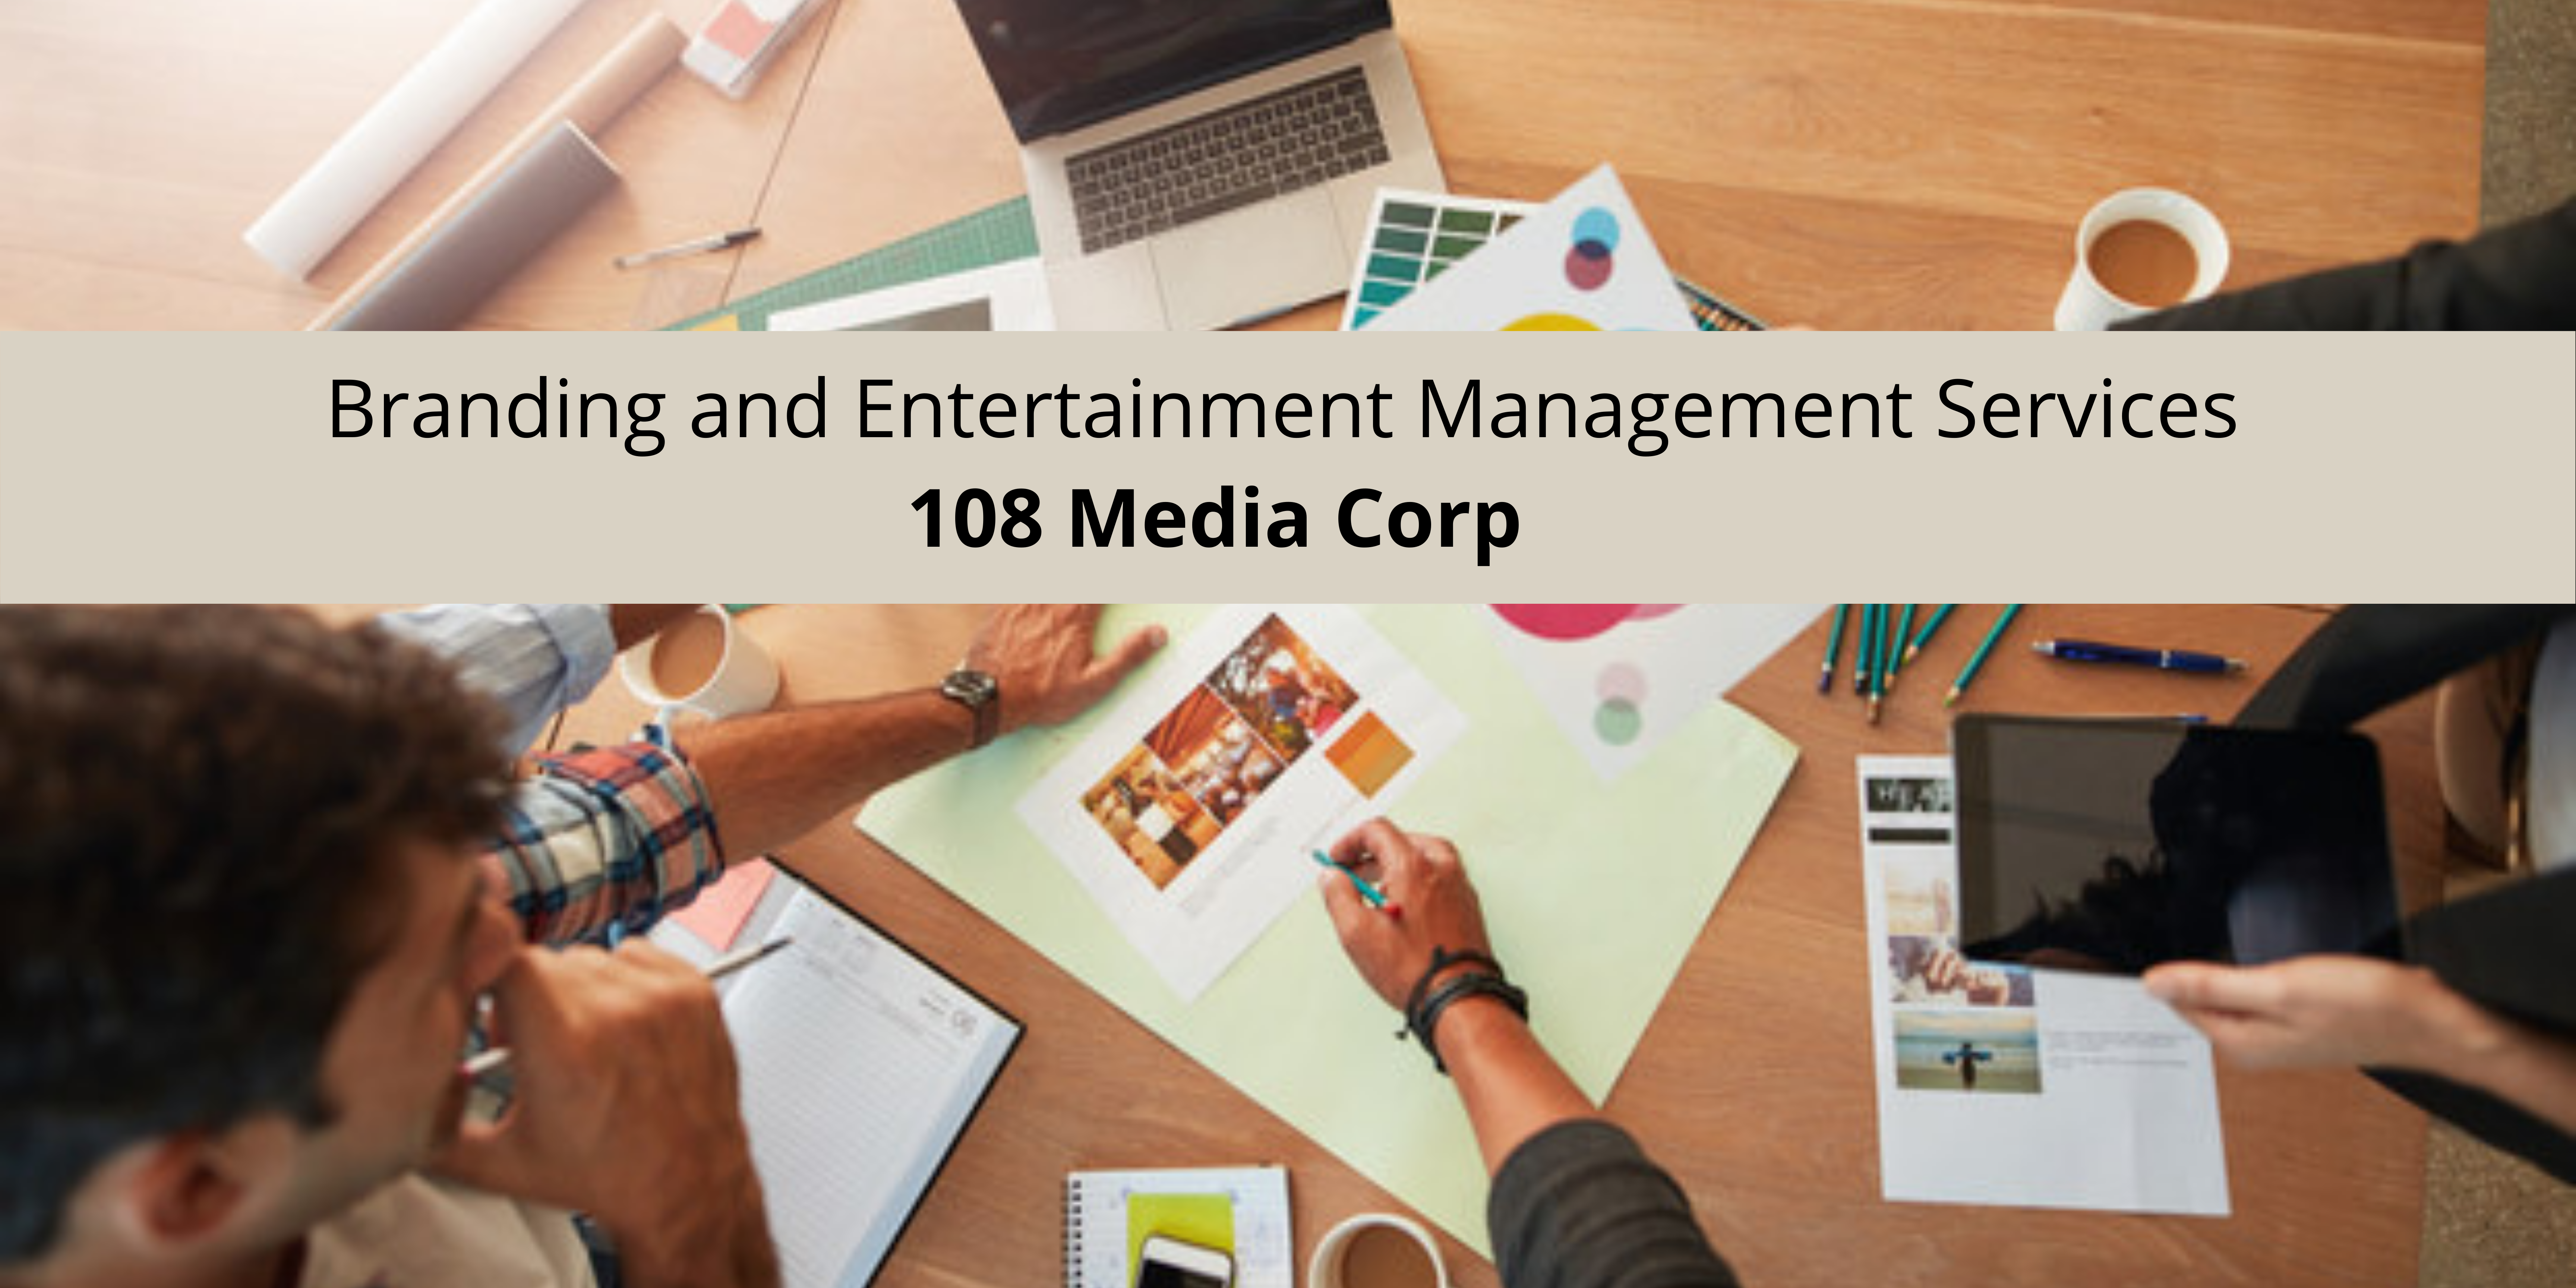 Branding and Entertainment Management Services that 108 Media Corp Provides